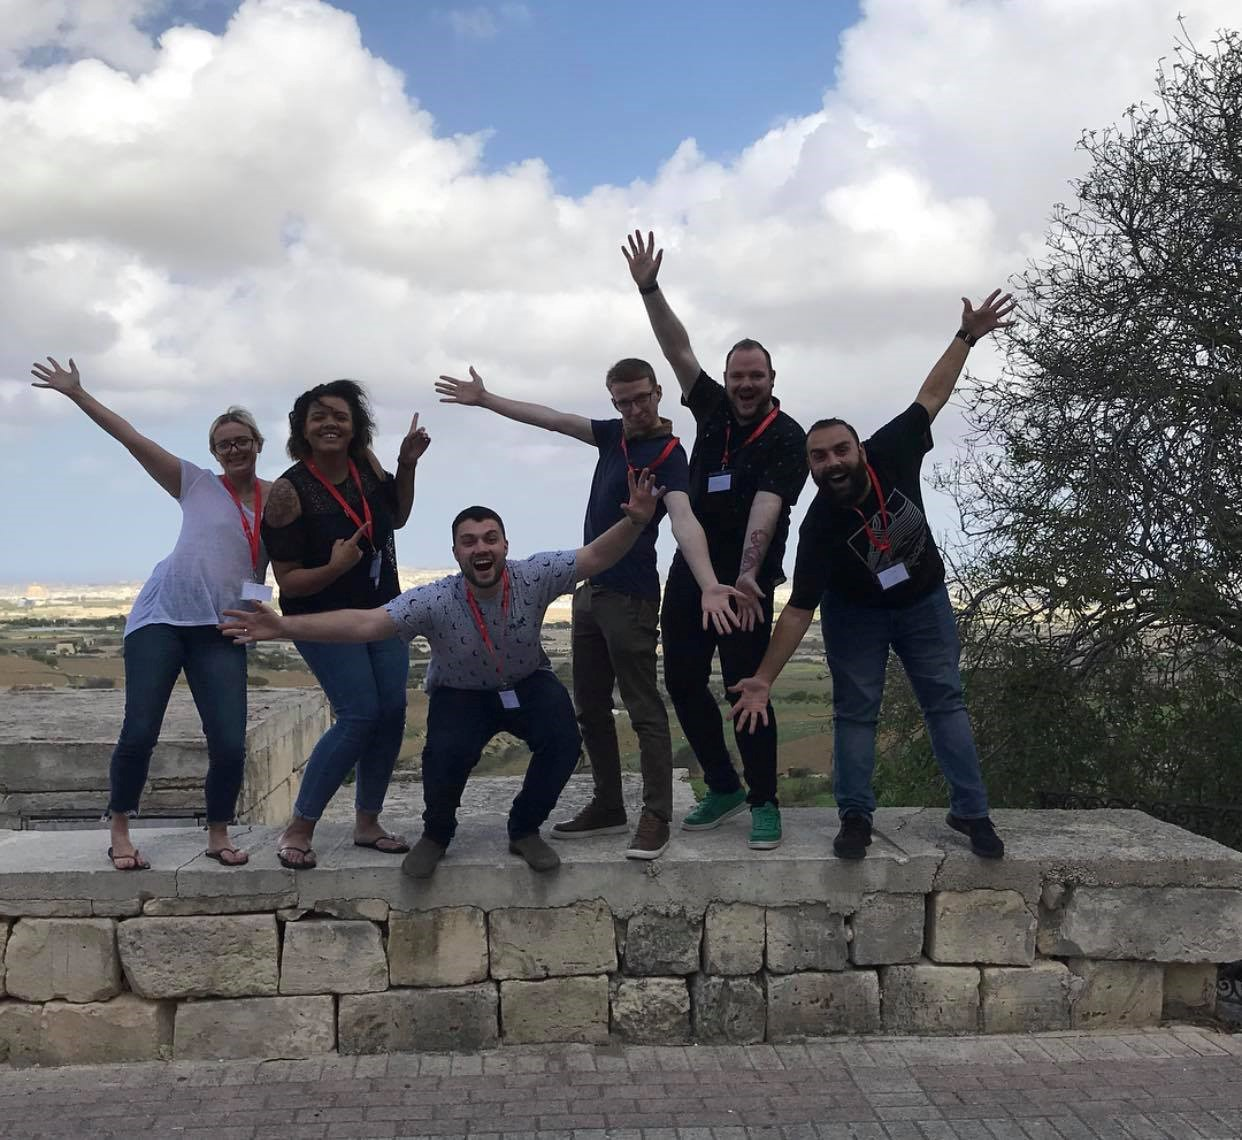 Malta pushing boundaries JCI UK delegates